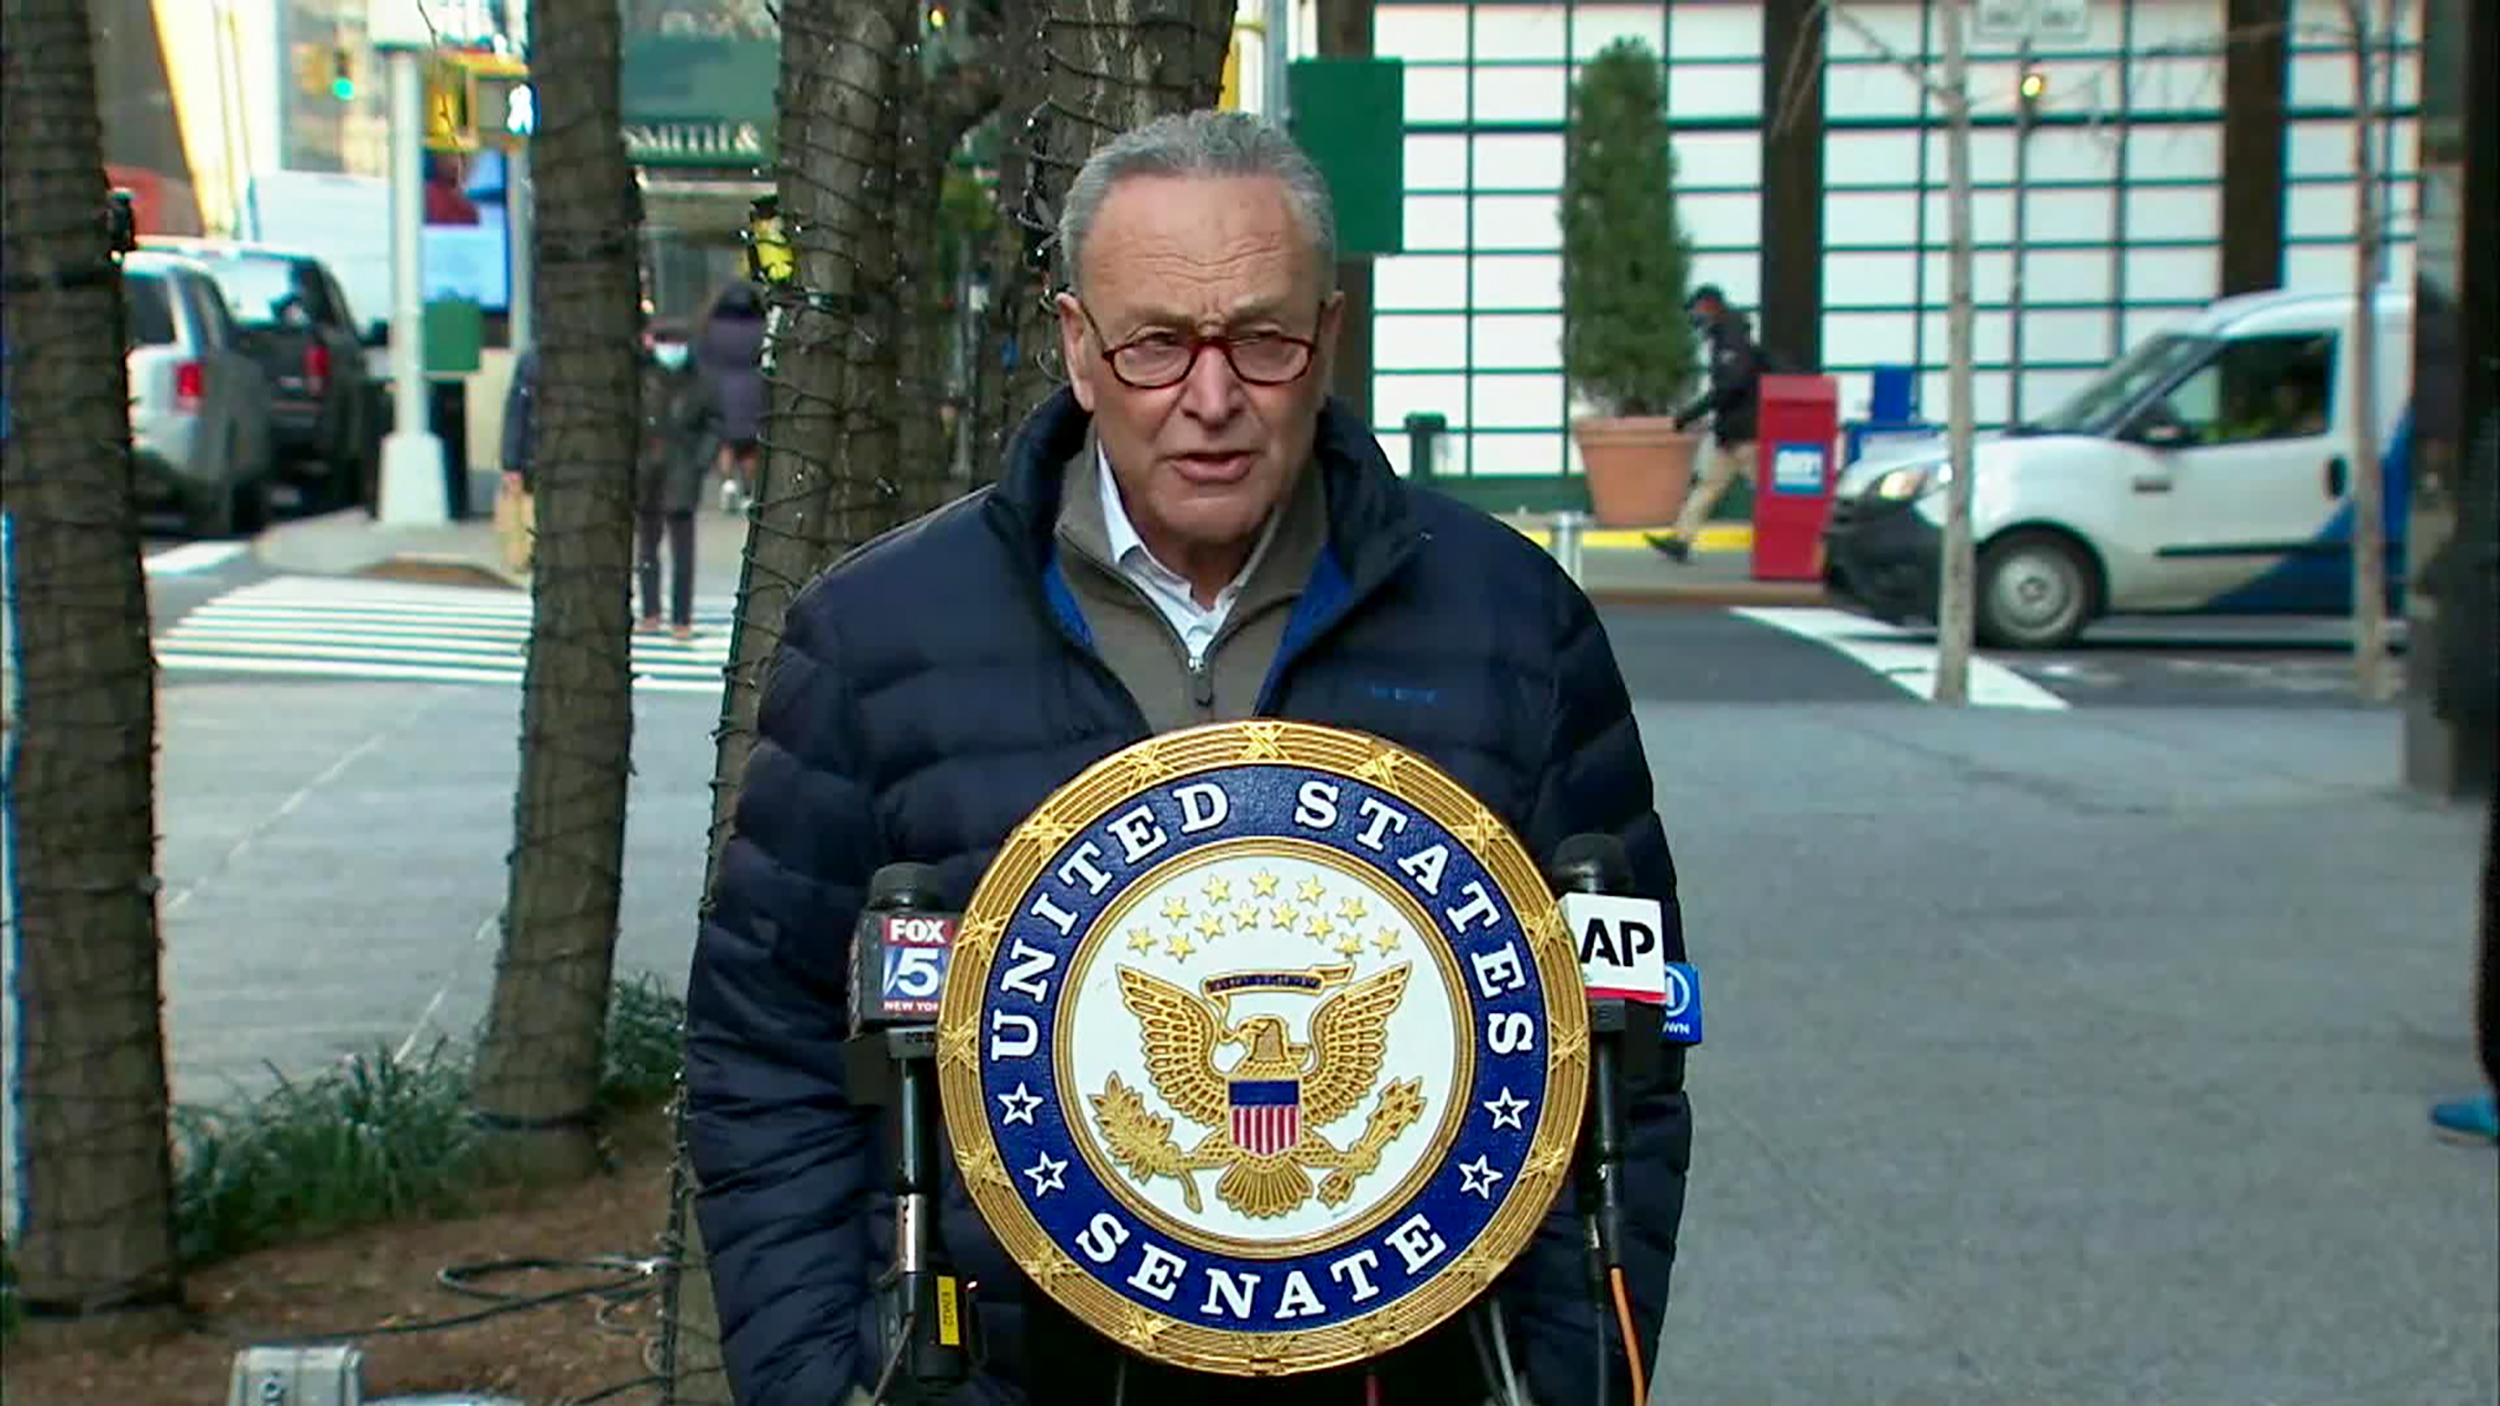 Sen. Chuck Schumer speaks during a press conference on Tuesday, January 12.